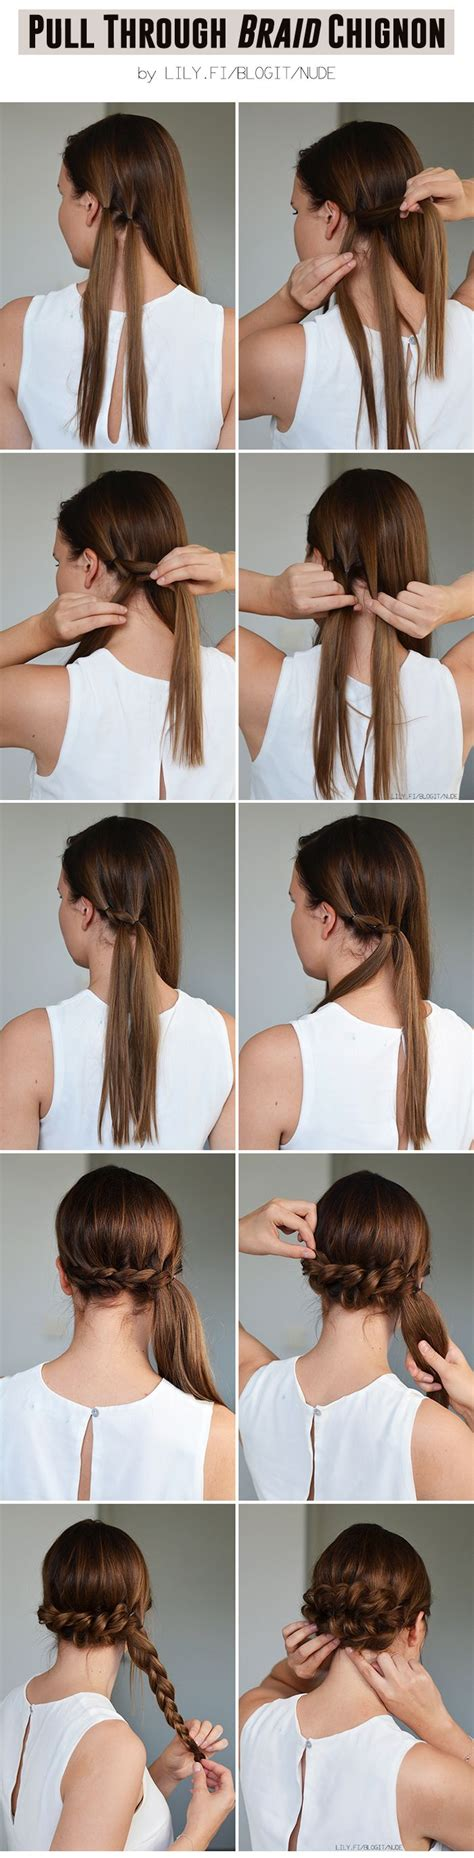 Easy Braided Hairstyles Tutorials by 22828 Best Danishaz Hair Make Up Inspirations Images On